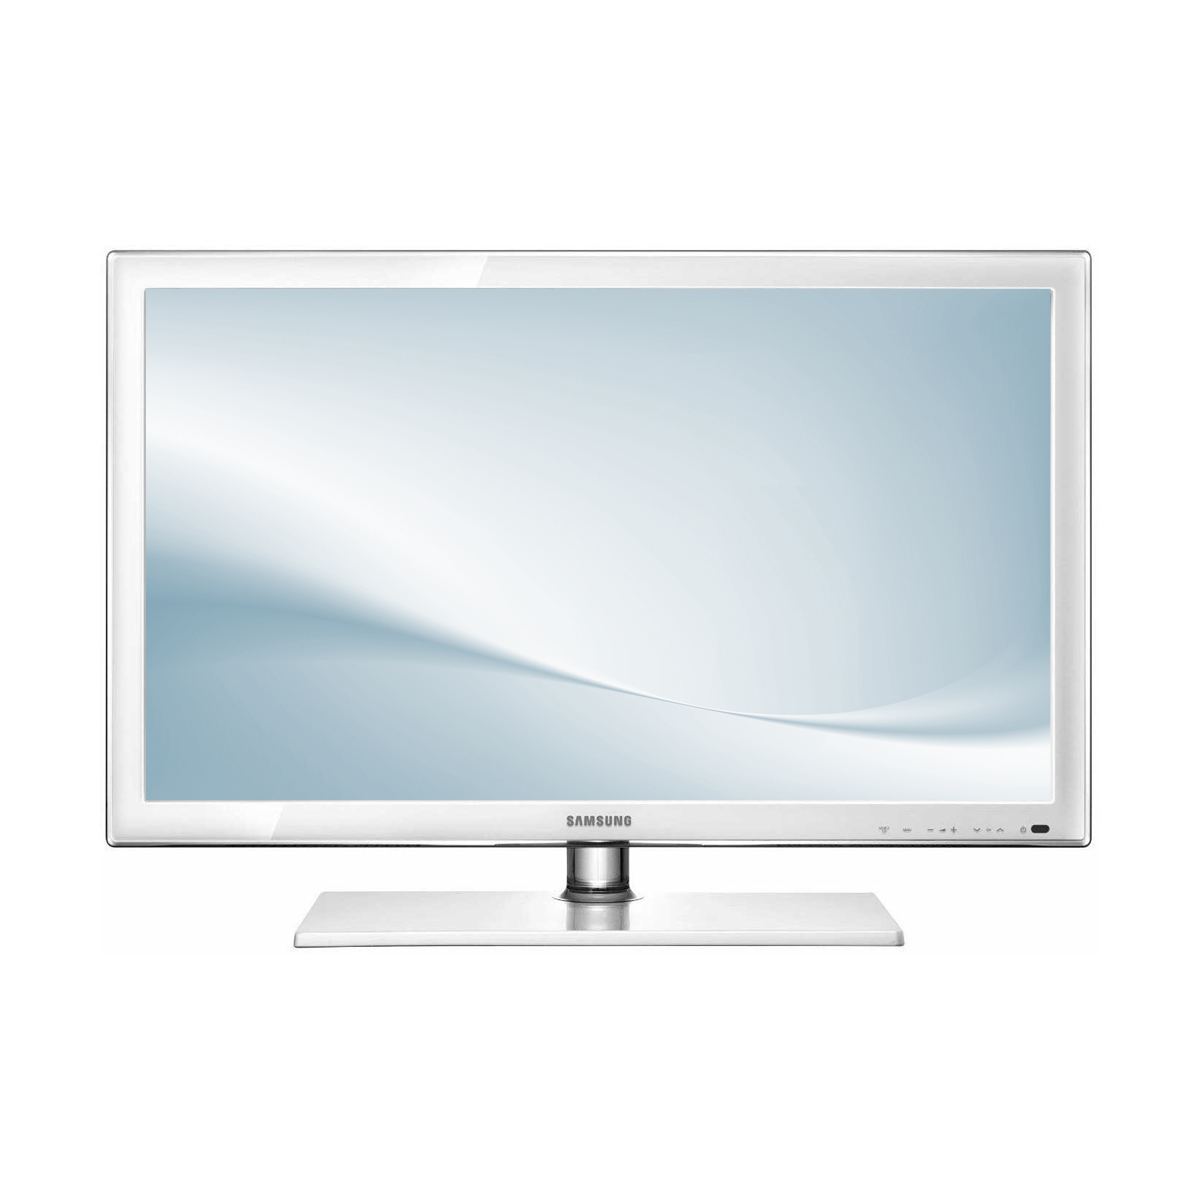 Samsung Ue32d4010nwx Lcd Tv Review Compare Prices Buy